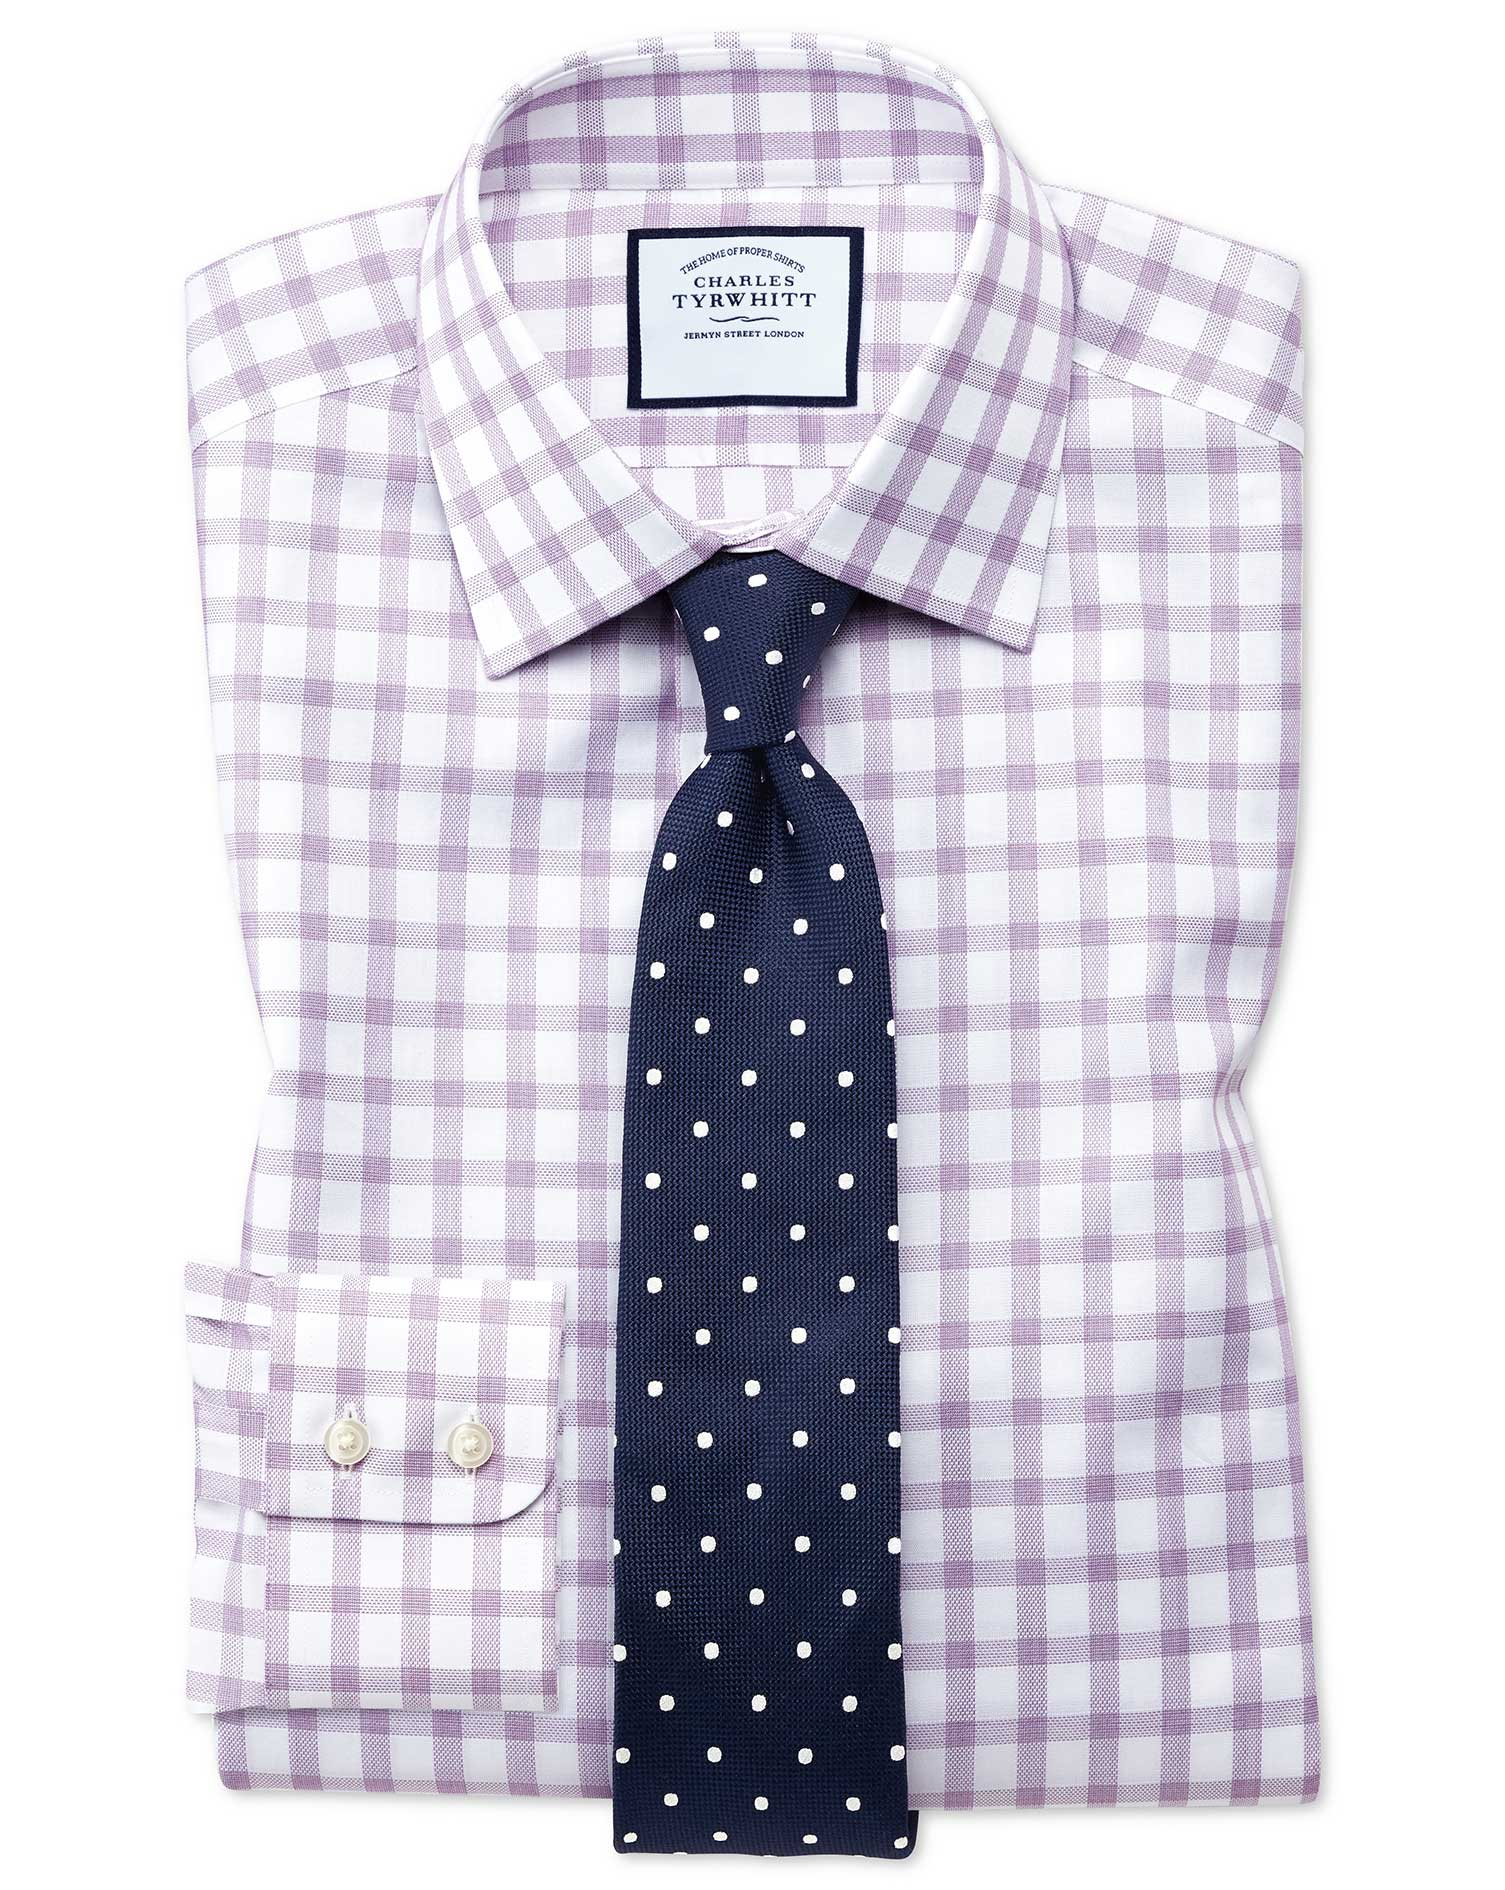 Slim Fit Windowpane Check Purple Cotton Formal Shirt Single Cuff Size 14.5/33 by Charles Tyrwhitt